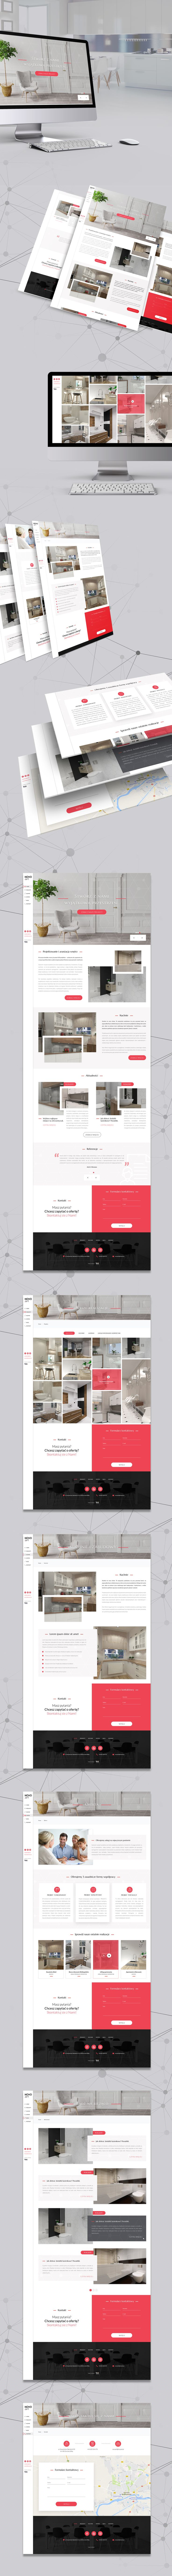 Responsive website for interior design company, checkout more project at http://wiwiagency.com/portfolio/